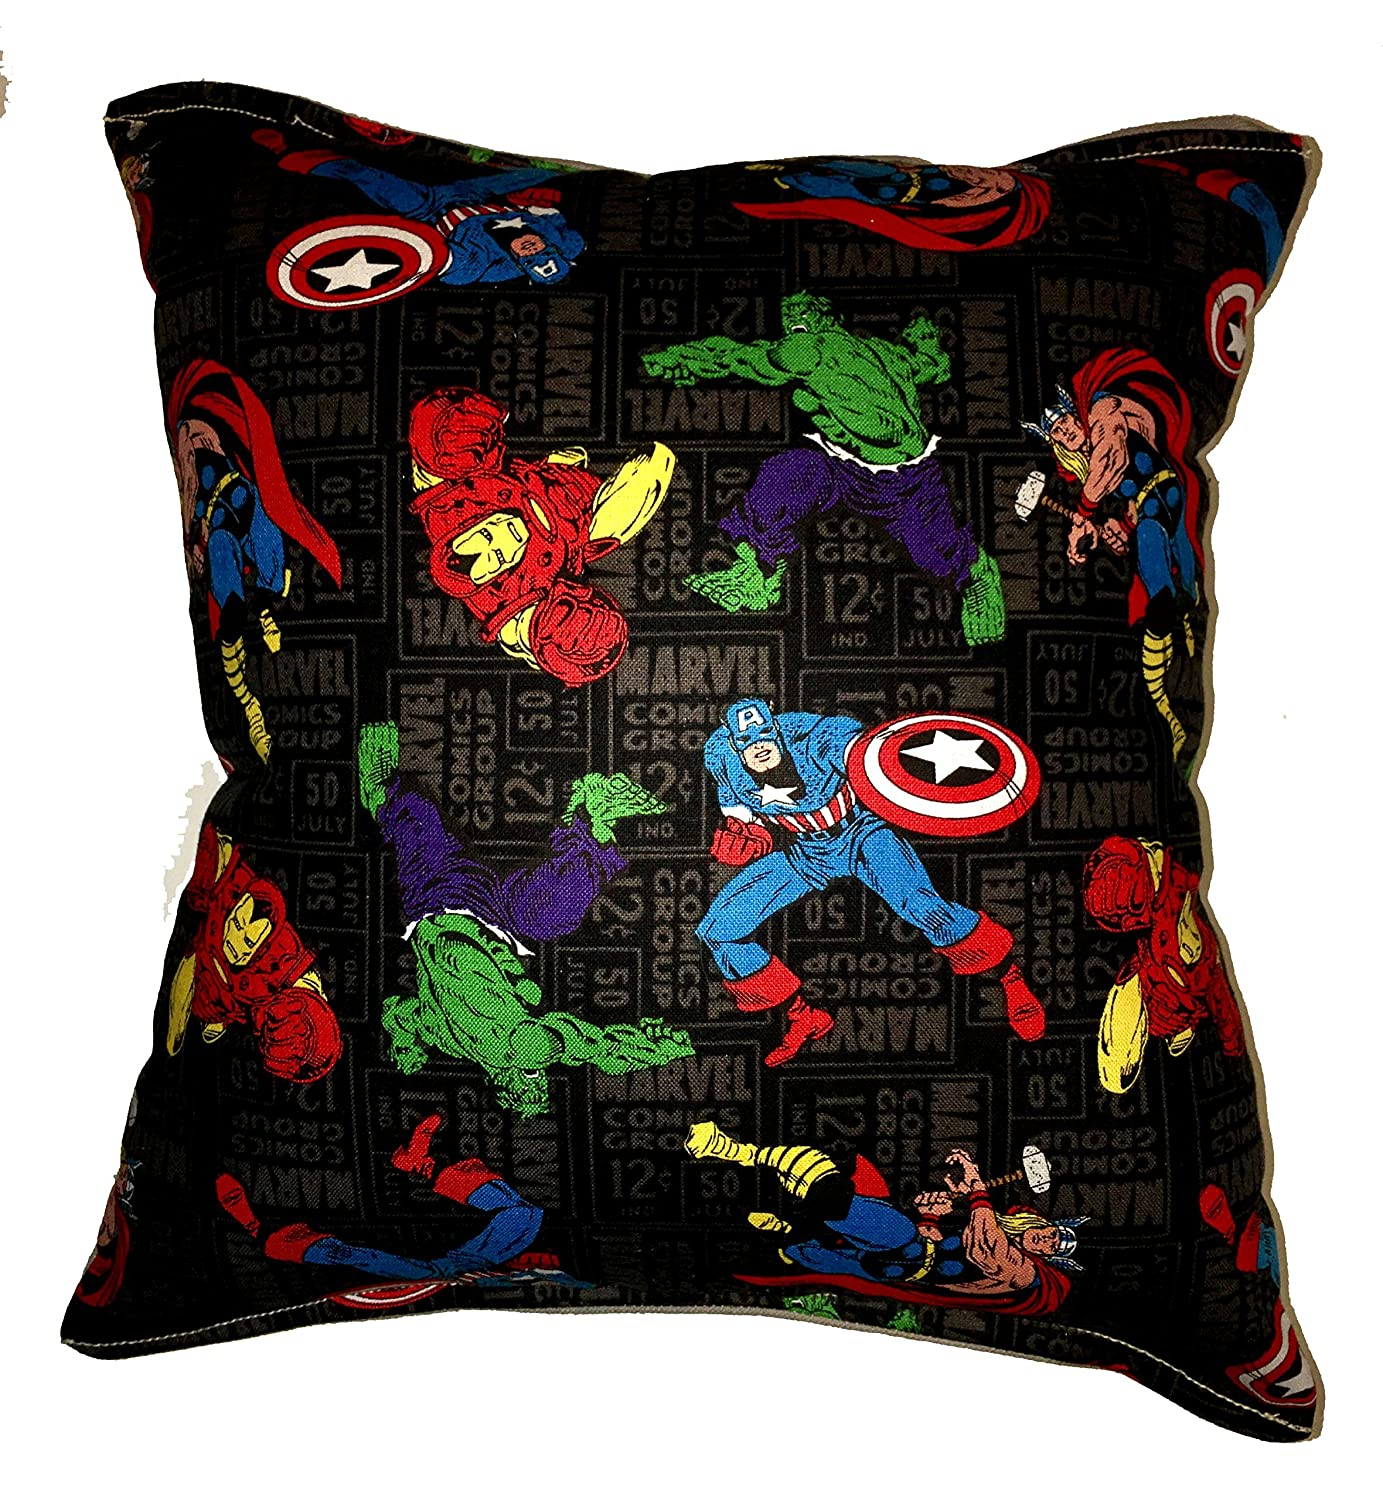 "Avengers Pillow Marvel Classic Hero's Pillow Hulk , Iron man , Captain America , Thor Pillow is approximately 10"" X 11"